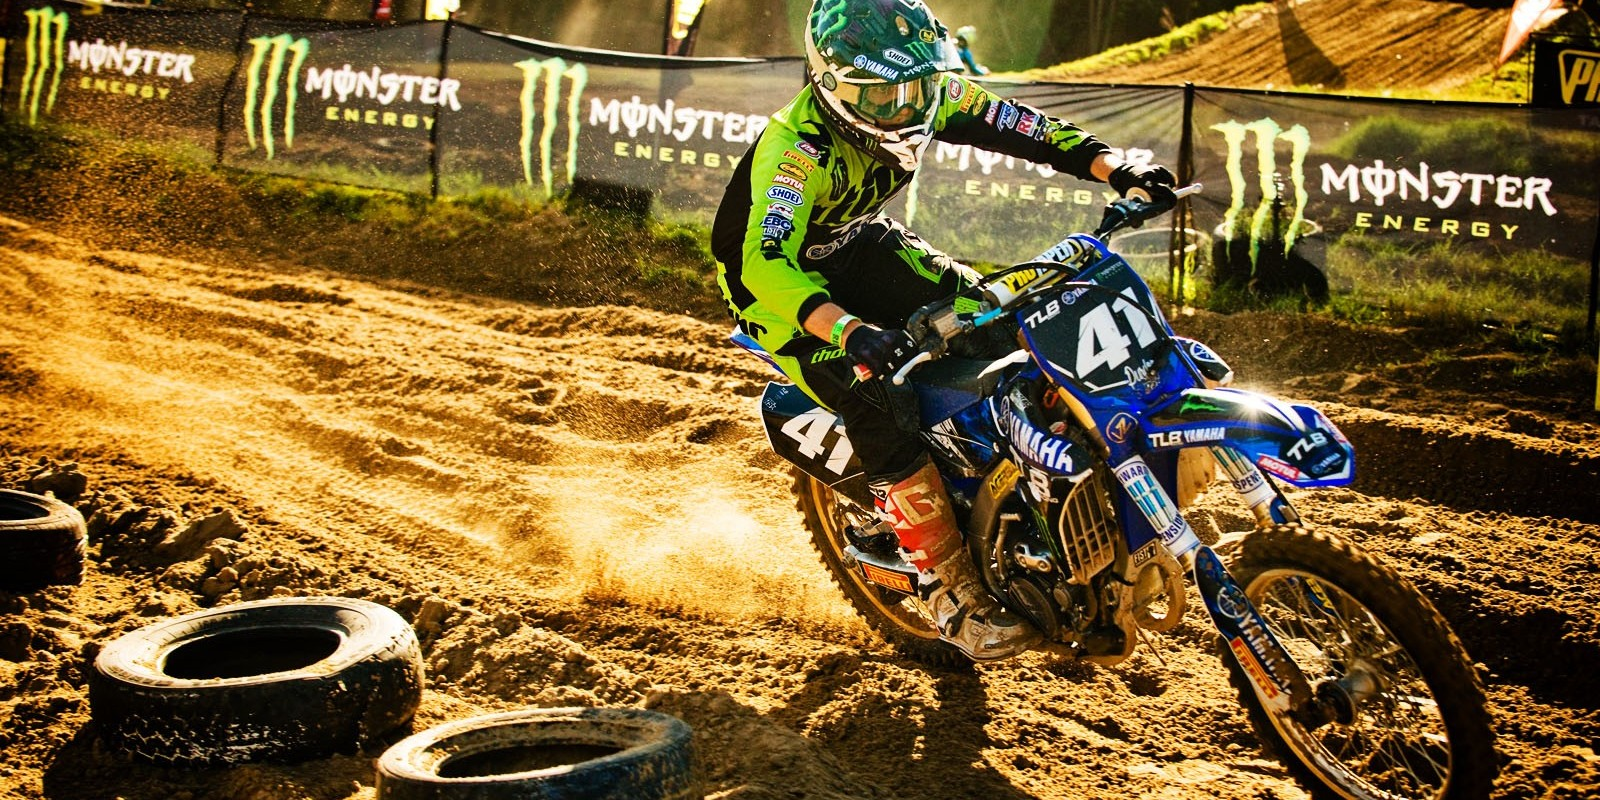 Tristan Purdon at Round 3 of South Africa MX Nationals in Port Elizabeth, South Africa